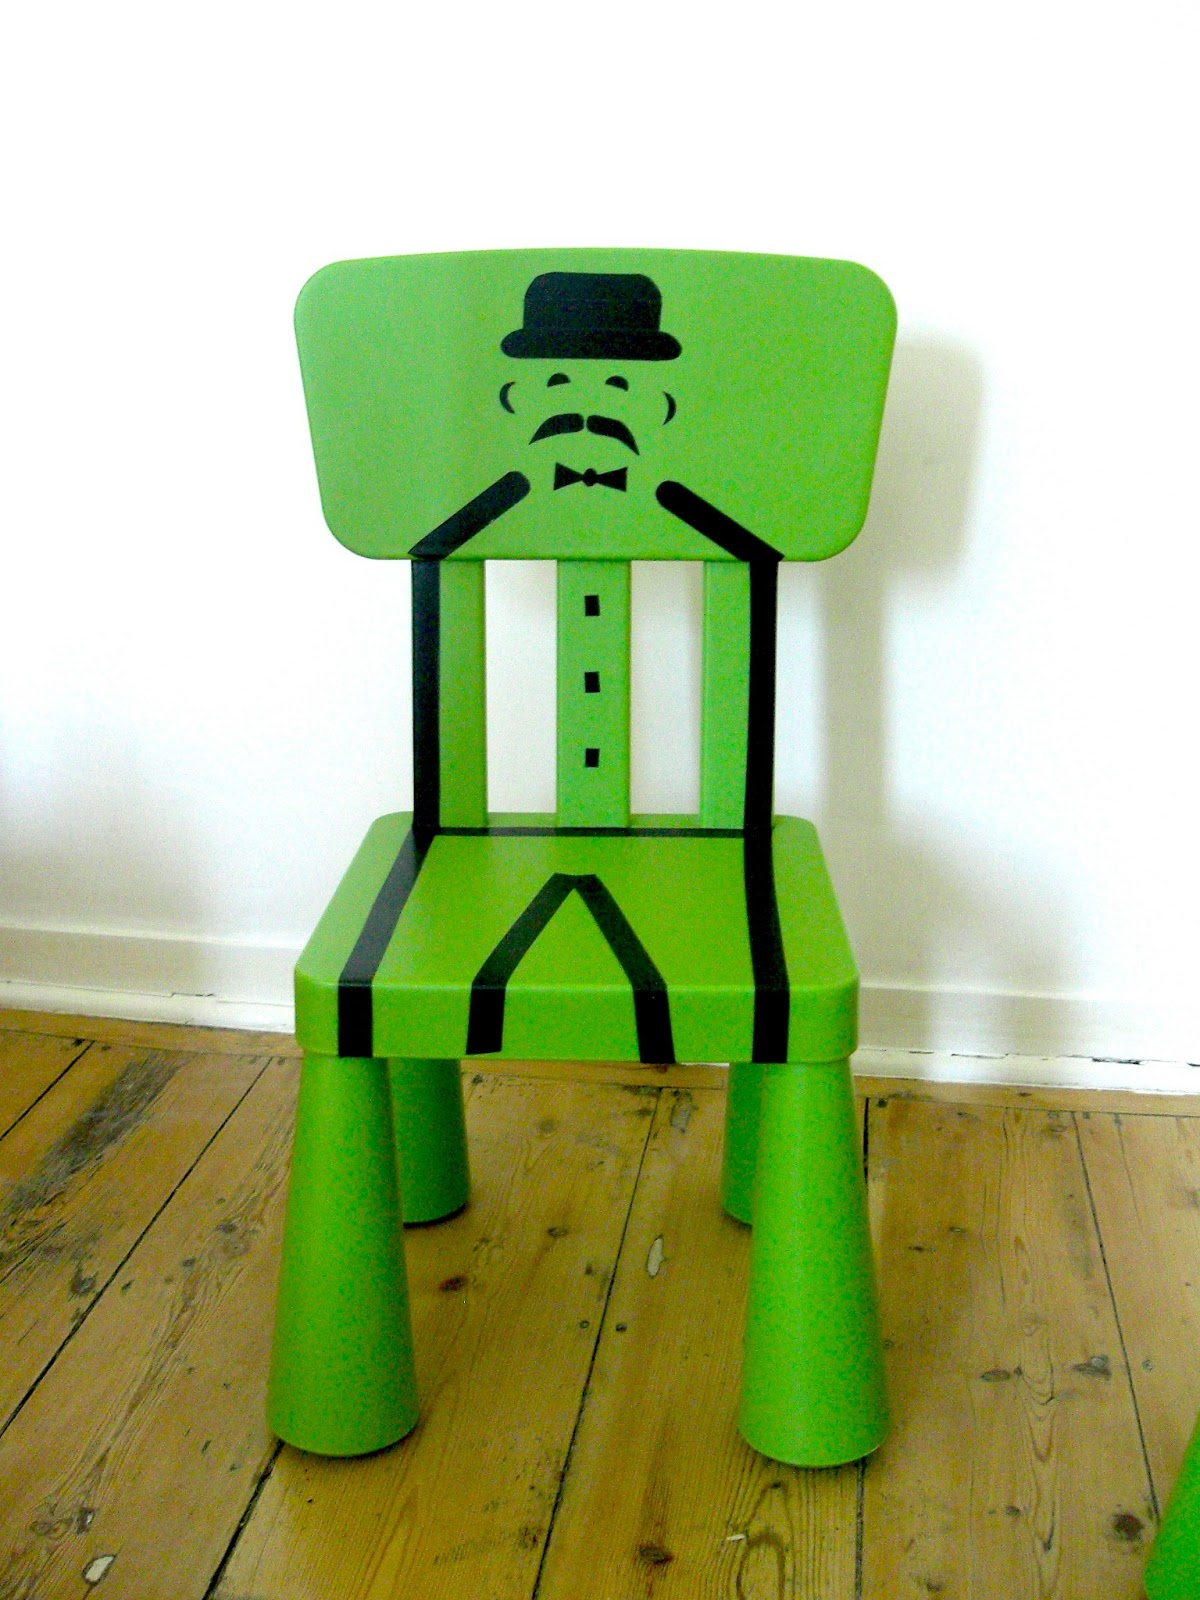 1000 images about meubles customis s on pinterest ikea hacks ikea lack ta - Customiser des chaises ...